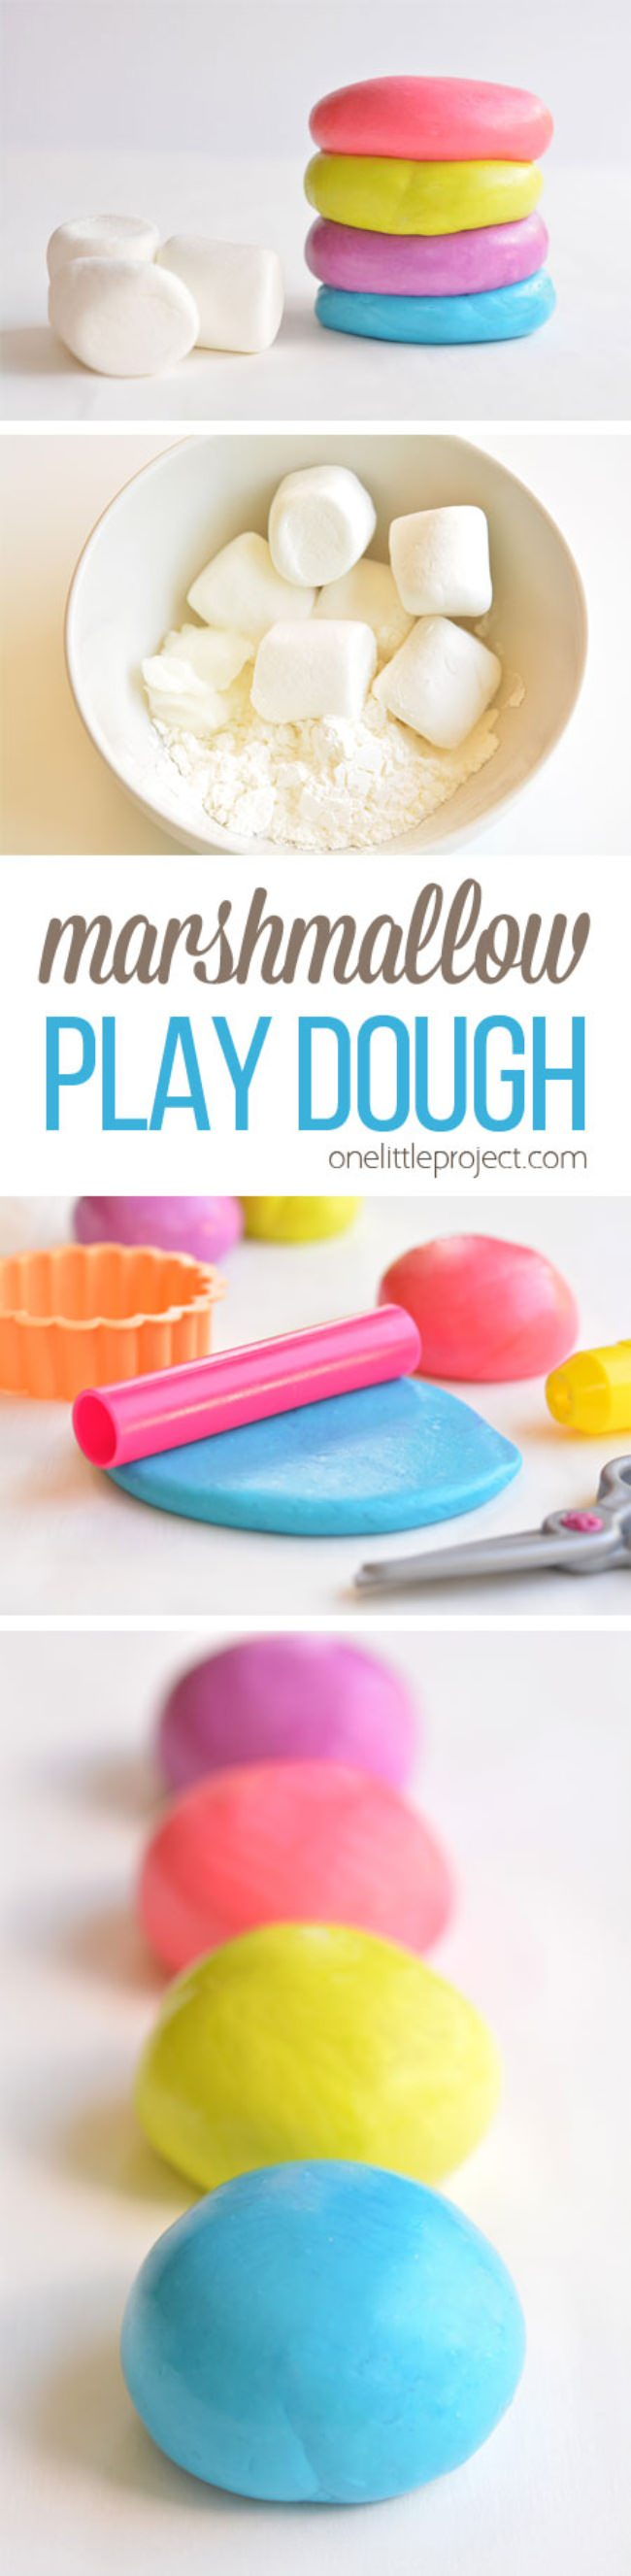 Marshmallow-Play-Dough4-jpg